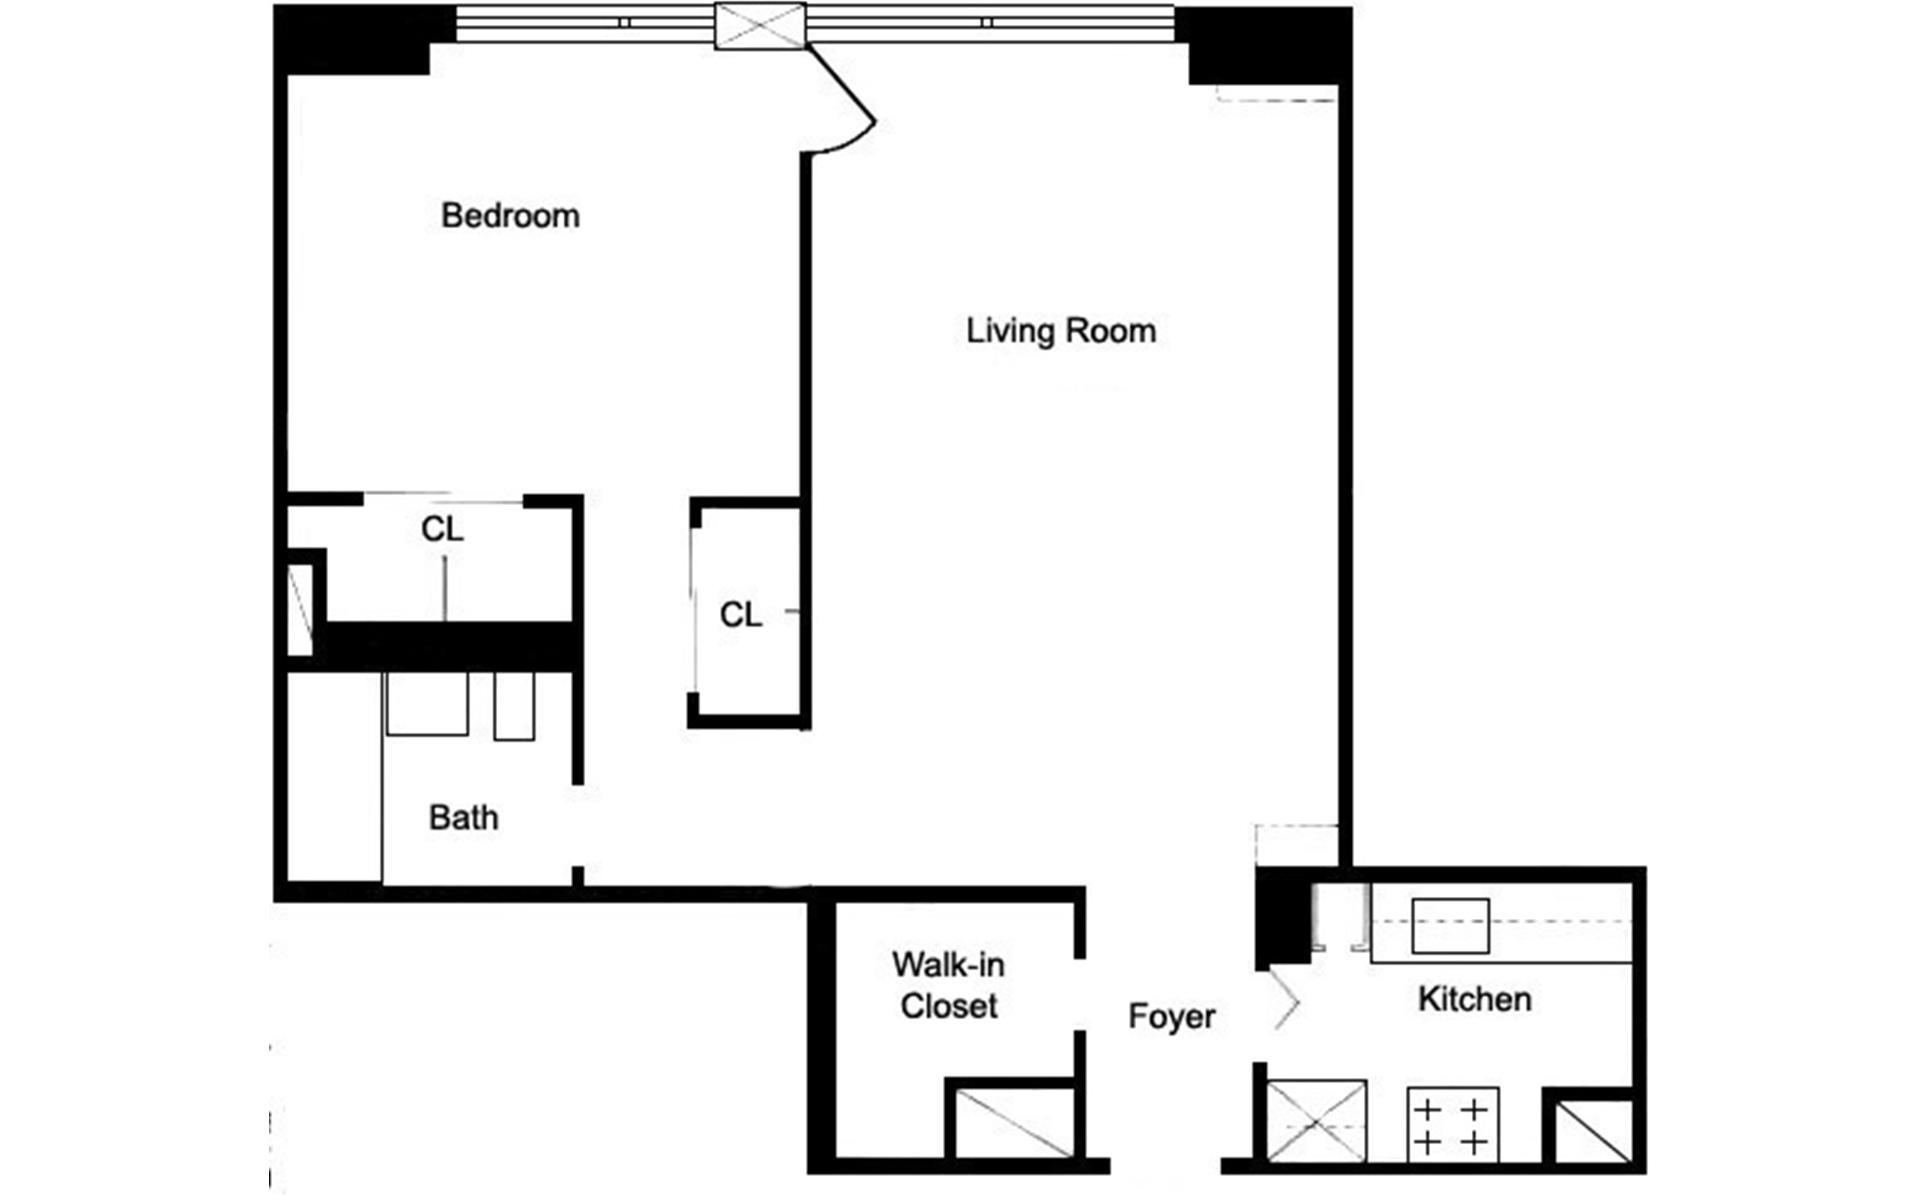 Floor plan of 400 CPW CONDOMINIUM, 400 Central Park West, 7Y - Upper West Side, New York